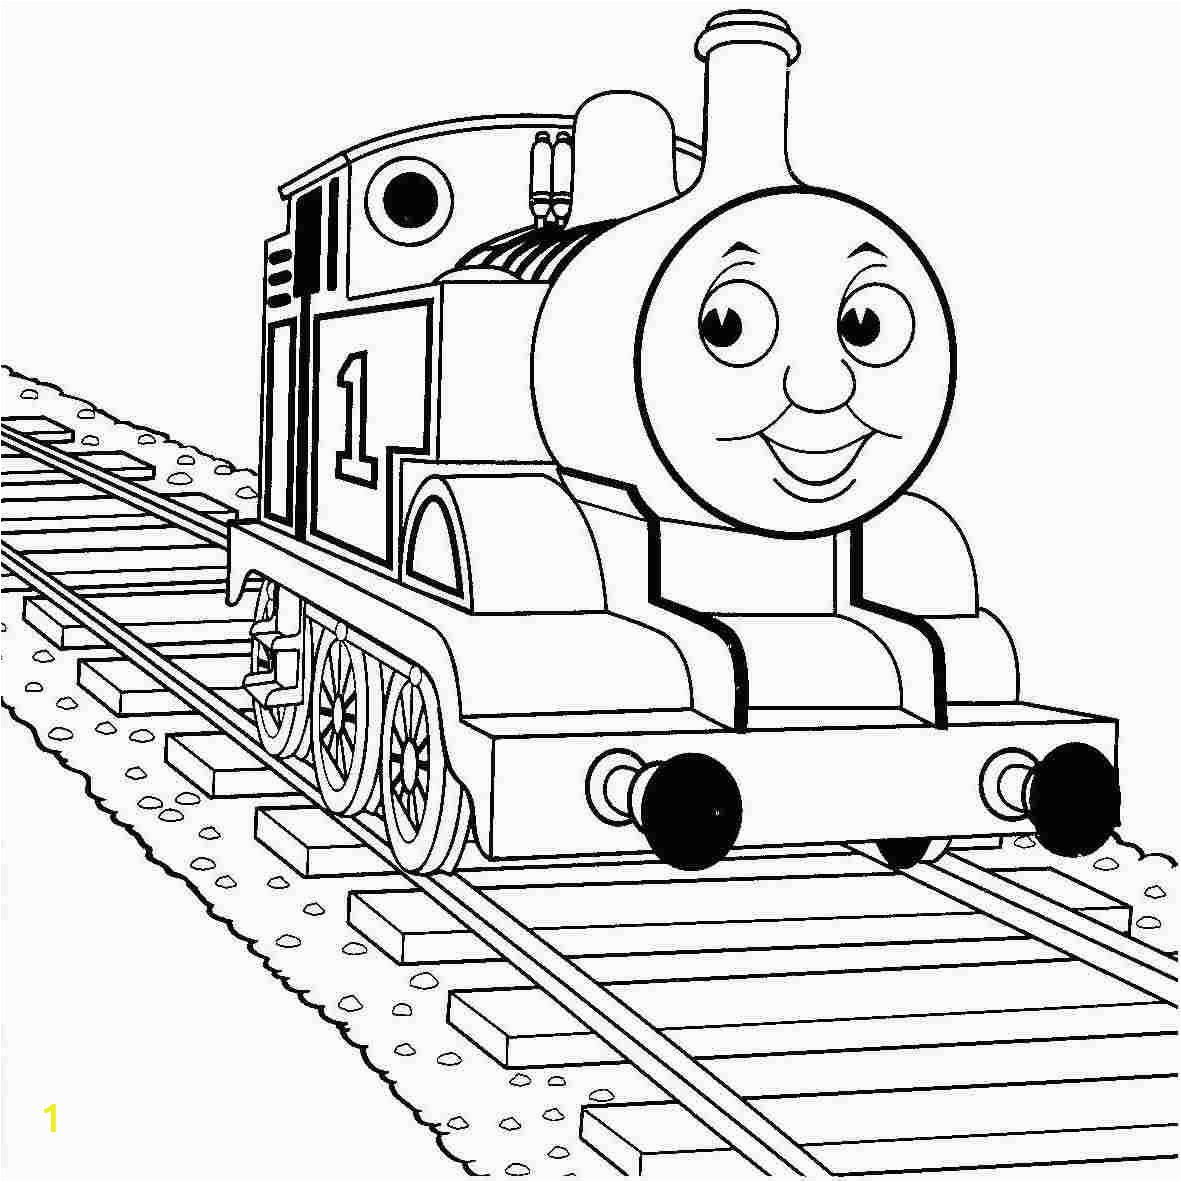 coloring pages thomas the train tank engine very easy coloring pages of thomas the train for boys